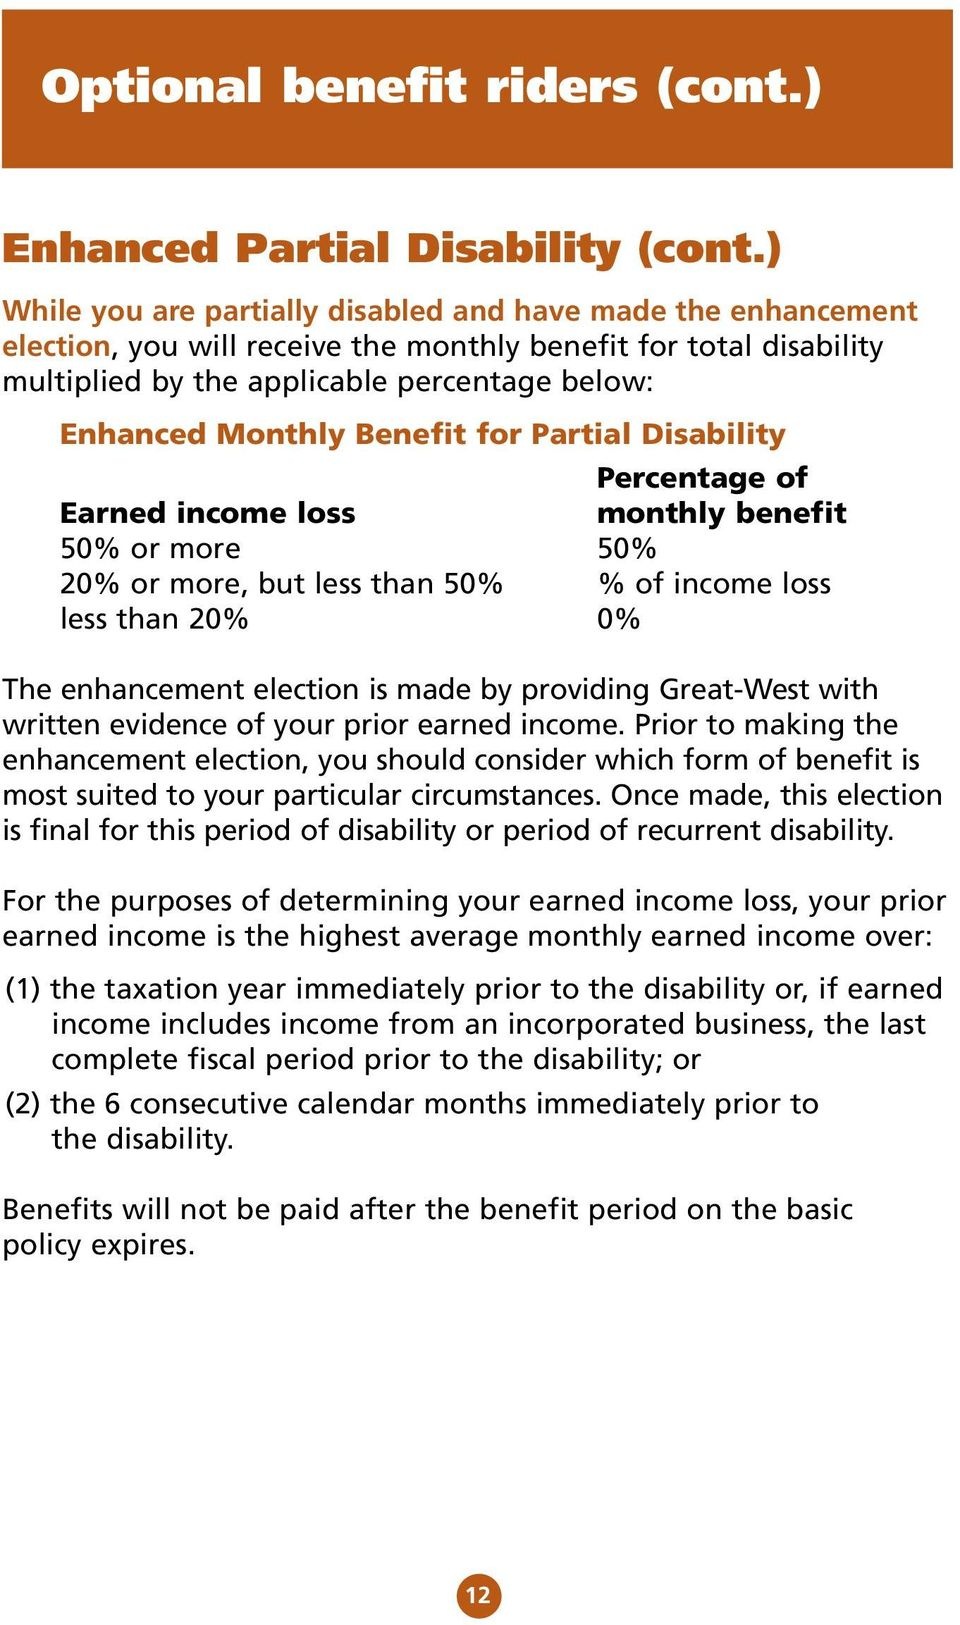 Benefit for Partial Disability Percentage of Earned income loss monthly benefit 50% or more 50% 20% or more, but less than 50% % of income loss less than 20% 0% The enhancement election is made by